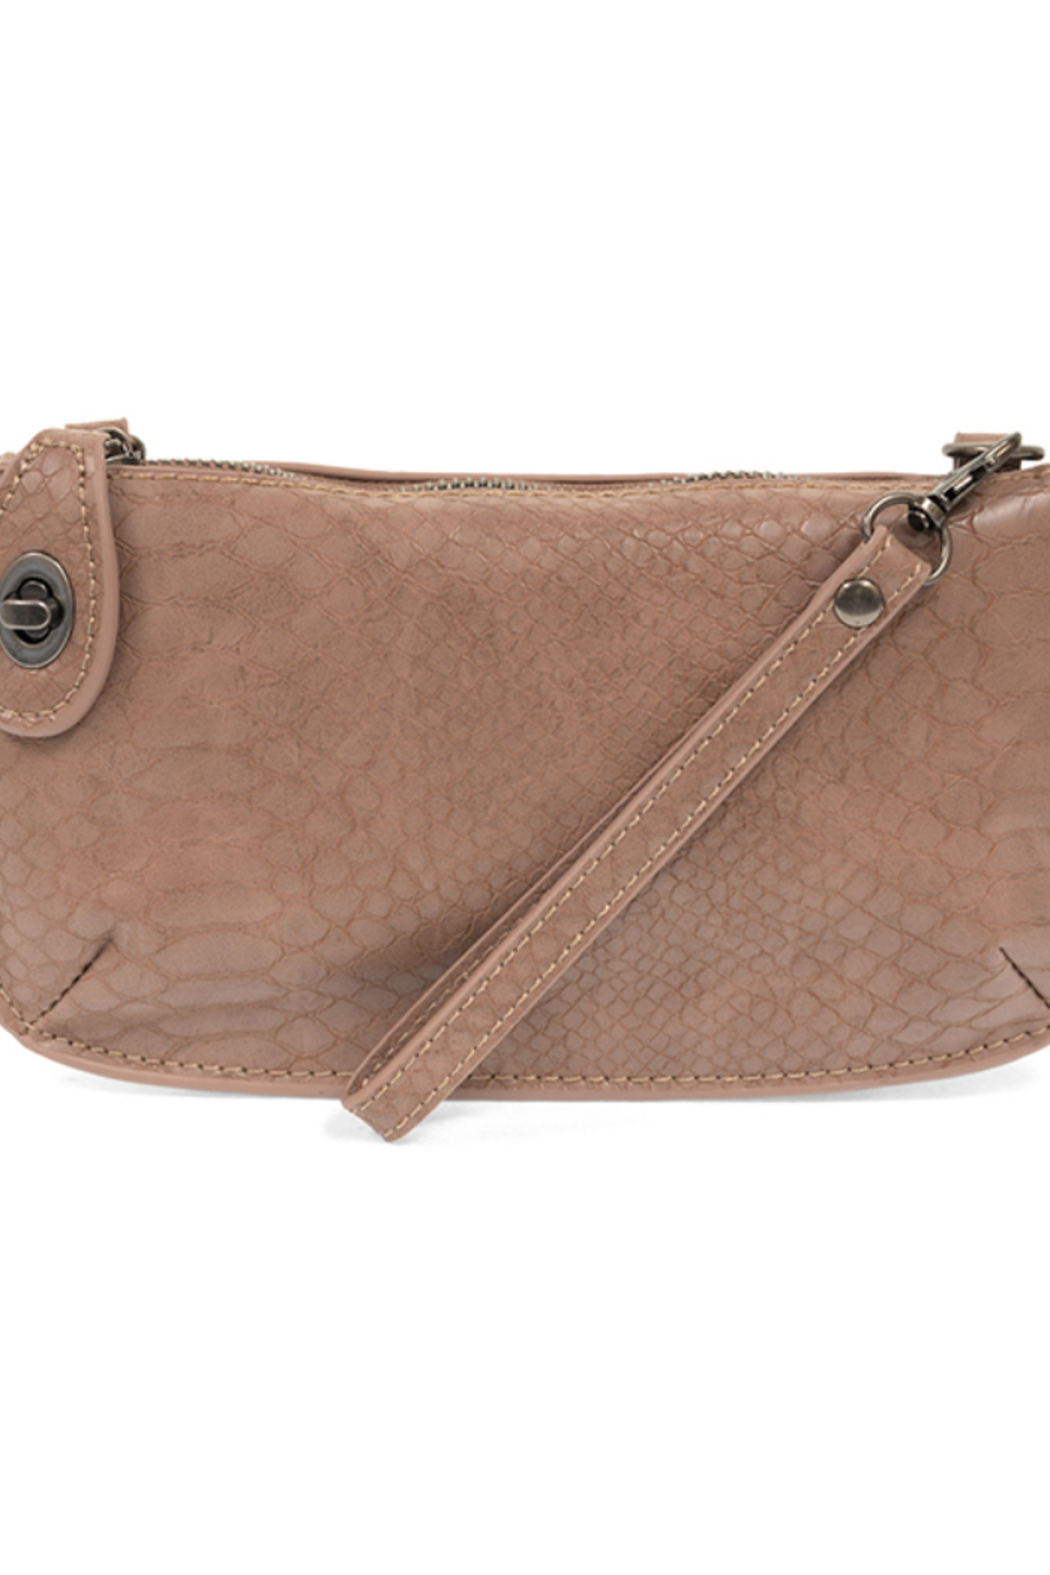 Joy Susan  Python Mini Crossbody Wristlet Clutch - Front Cropped Image